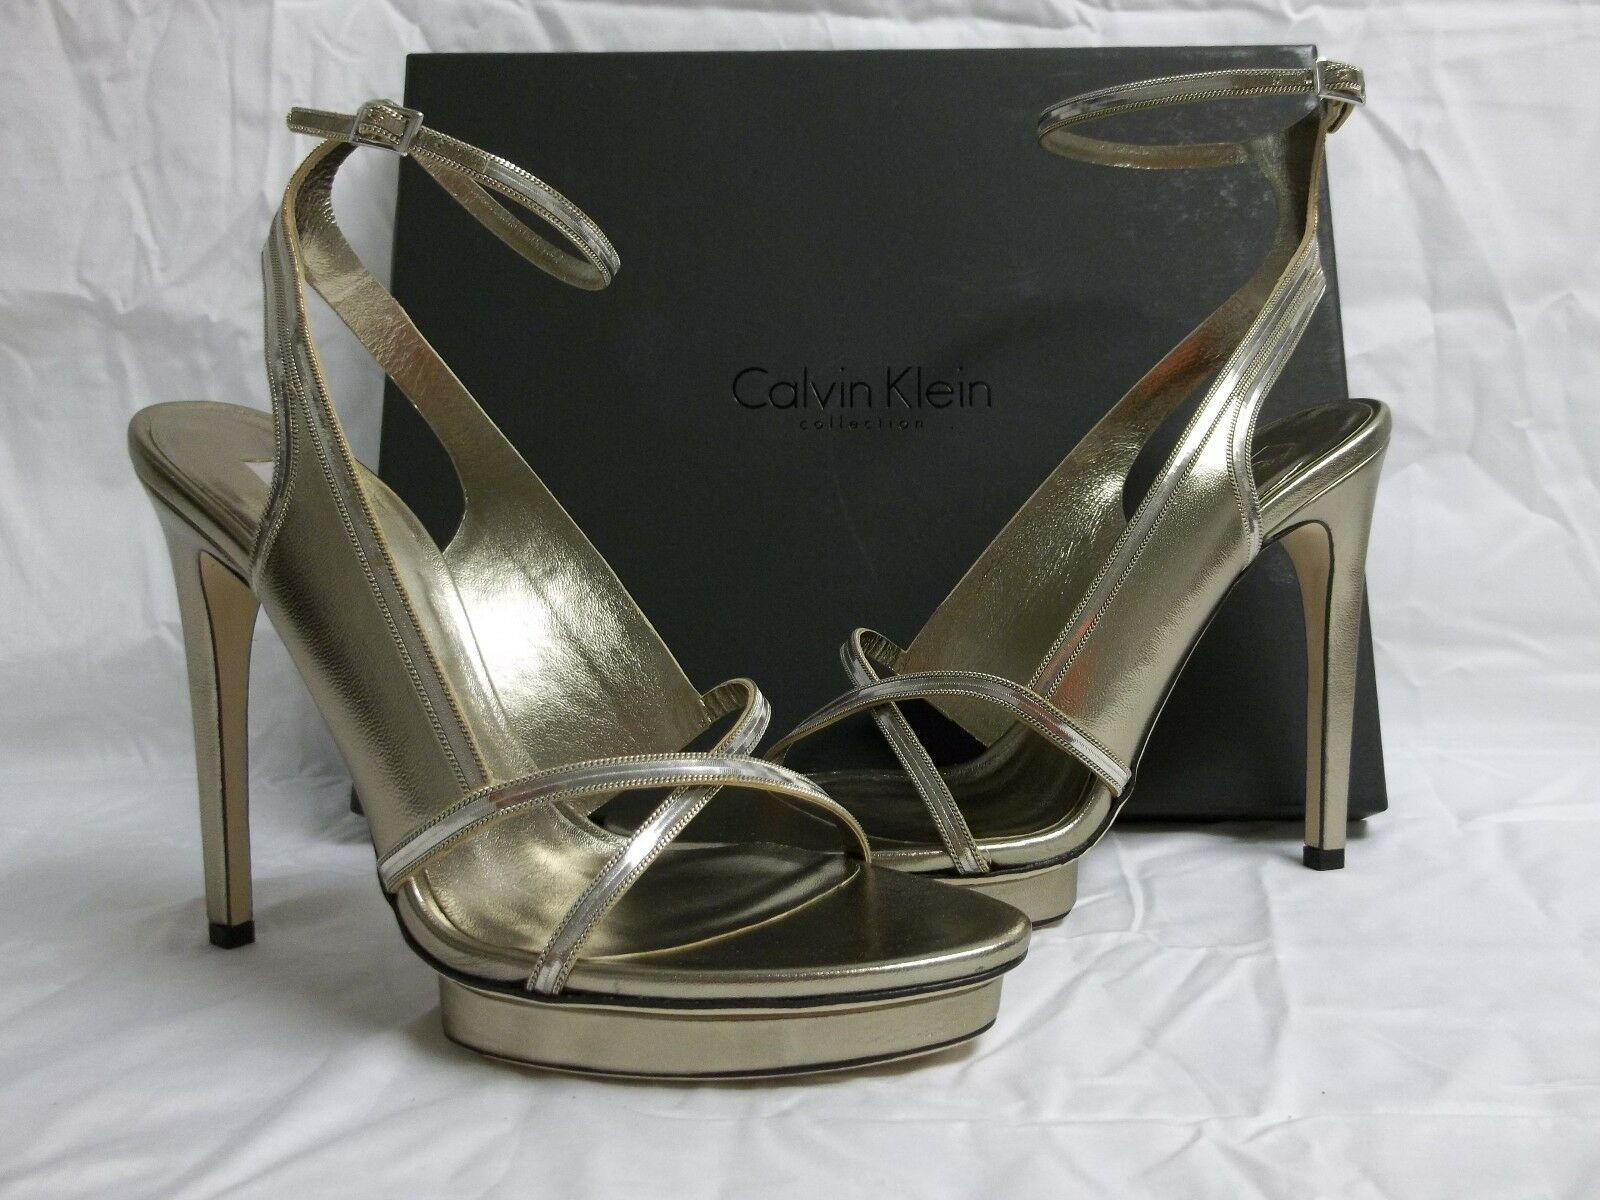 Calvin Klein Heels Collection US 8 Karina Argento Leather Heels Klein New Womens Shoes 93d313